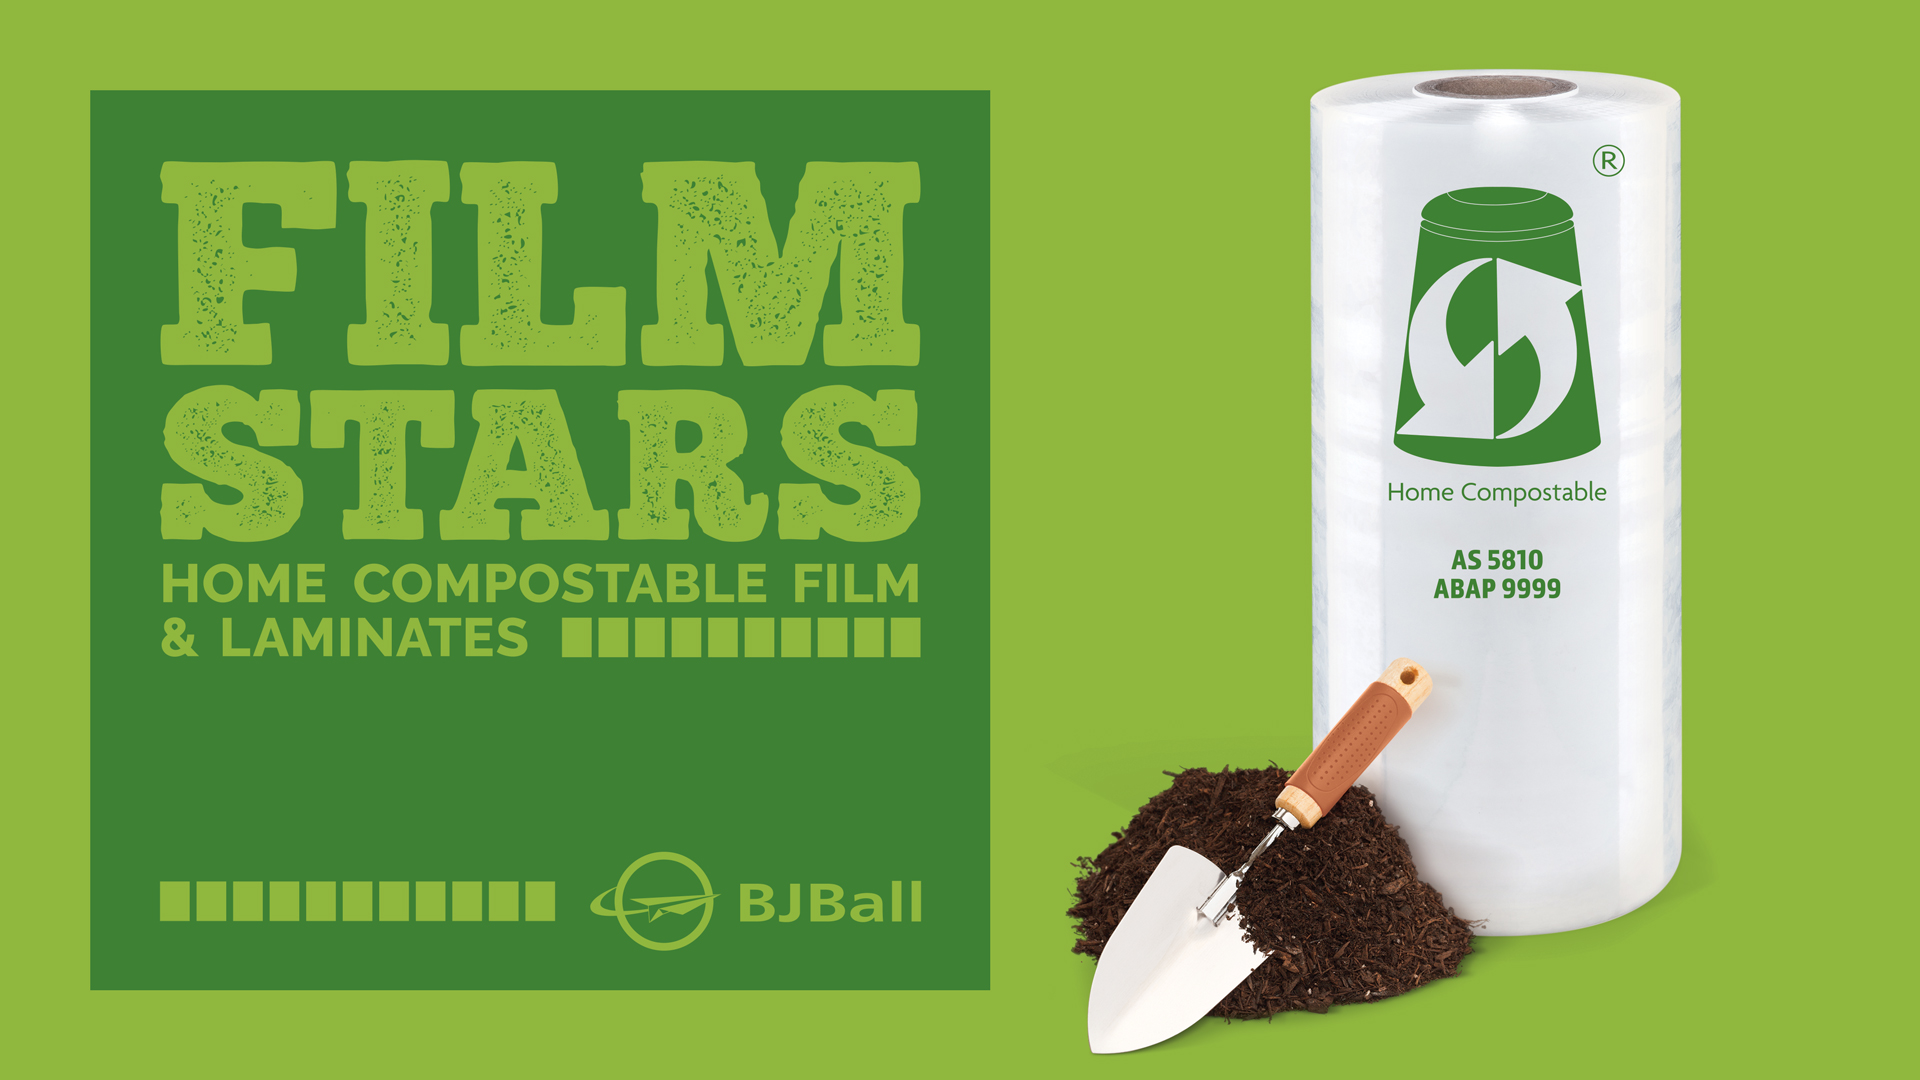 home compostable film